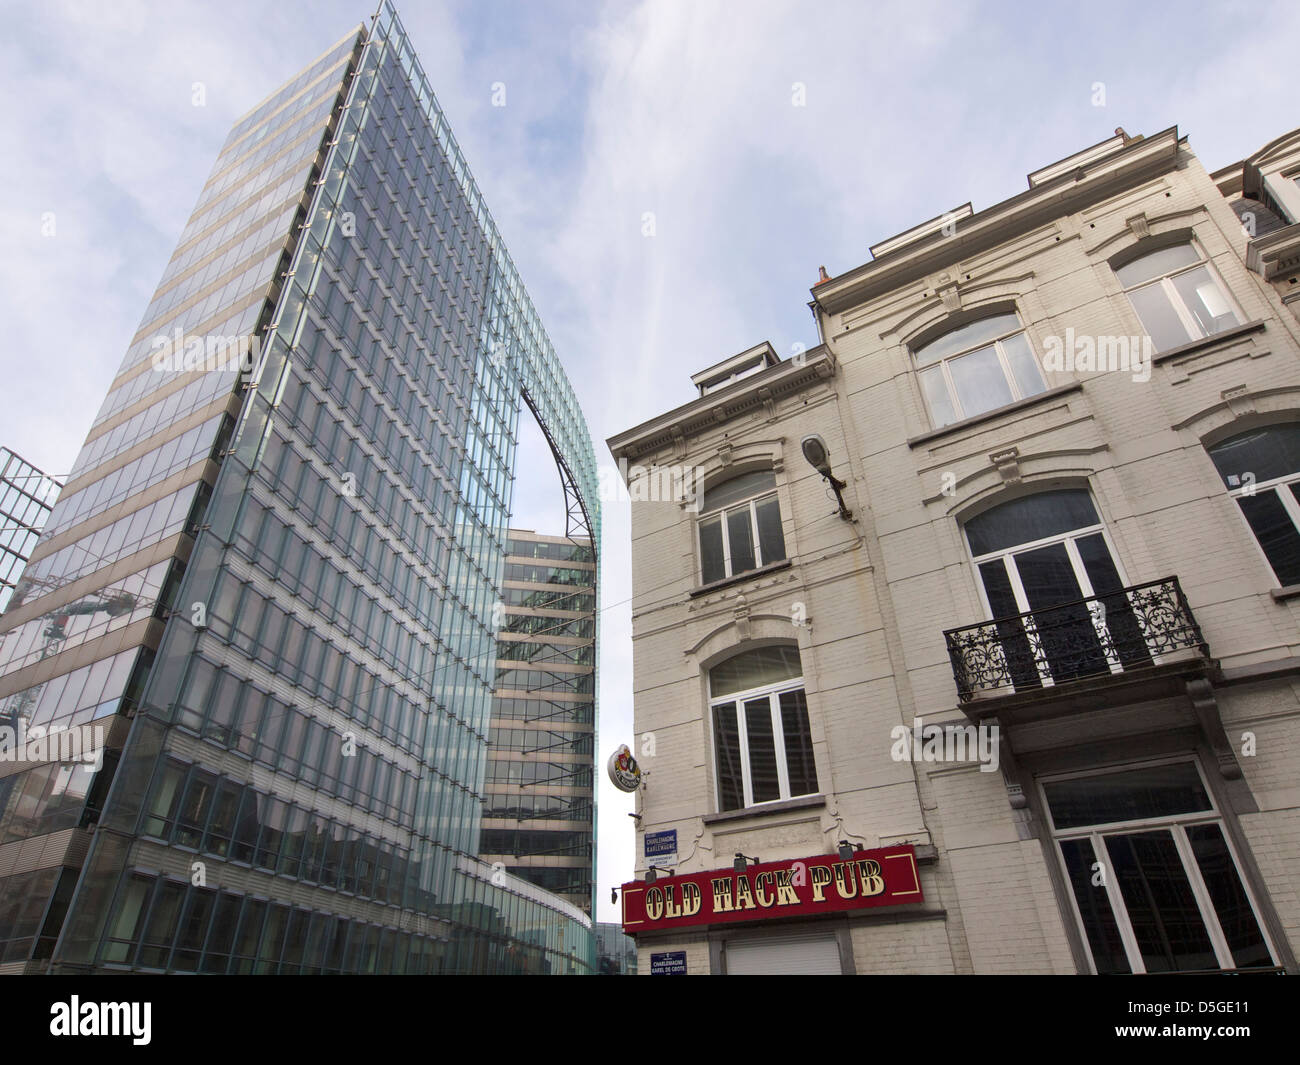 Old Hack Pub, old and new buildings in the European quarter of Brussels, Belgium Stock Photo